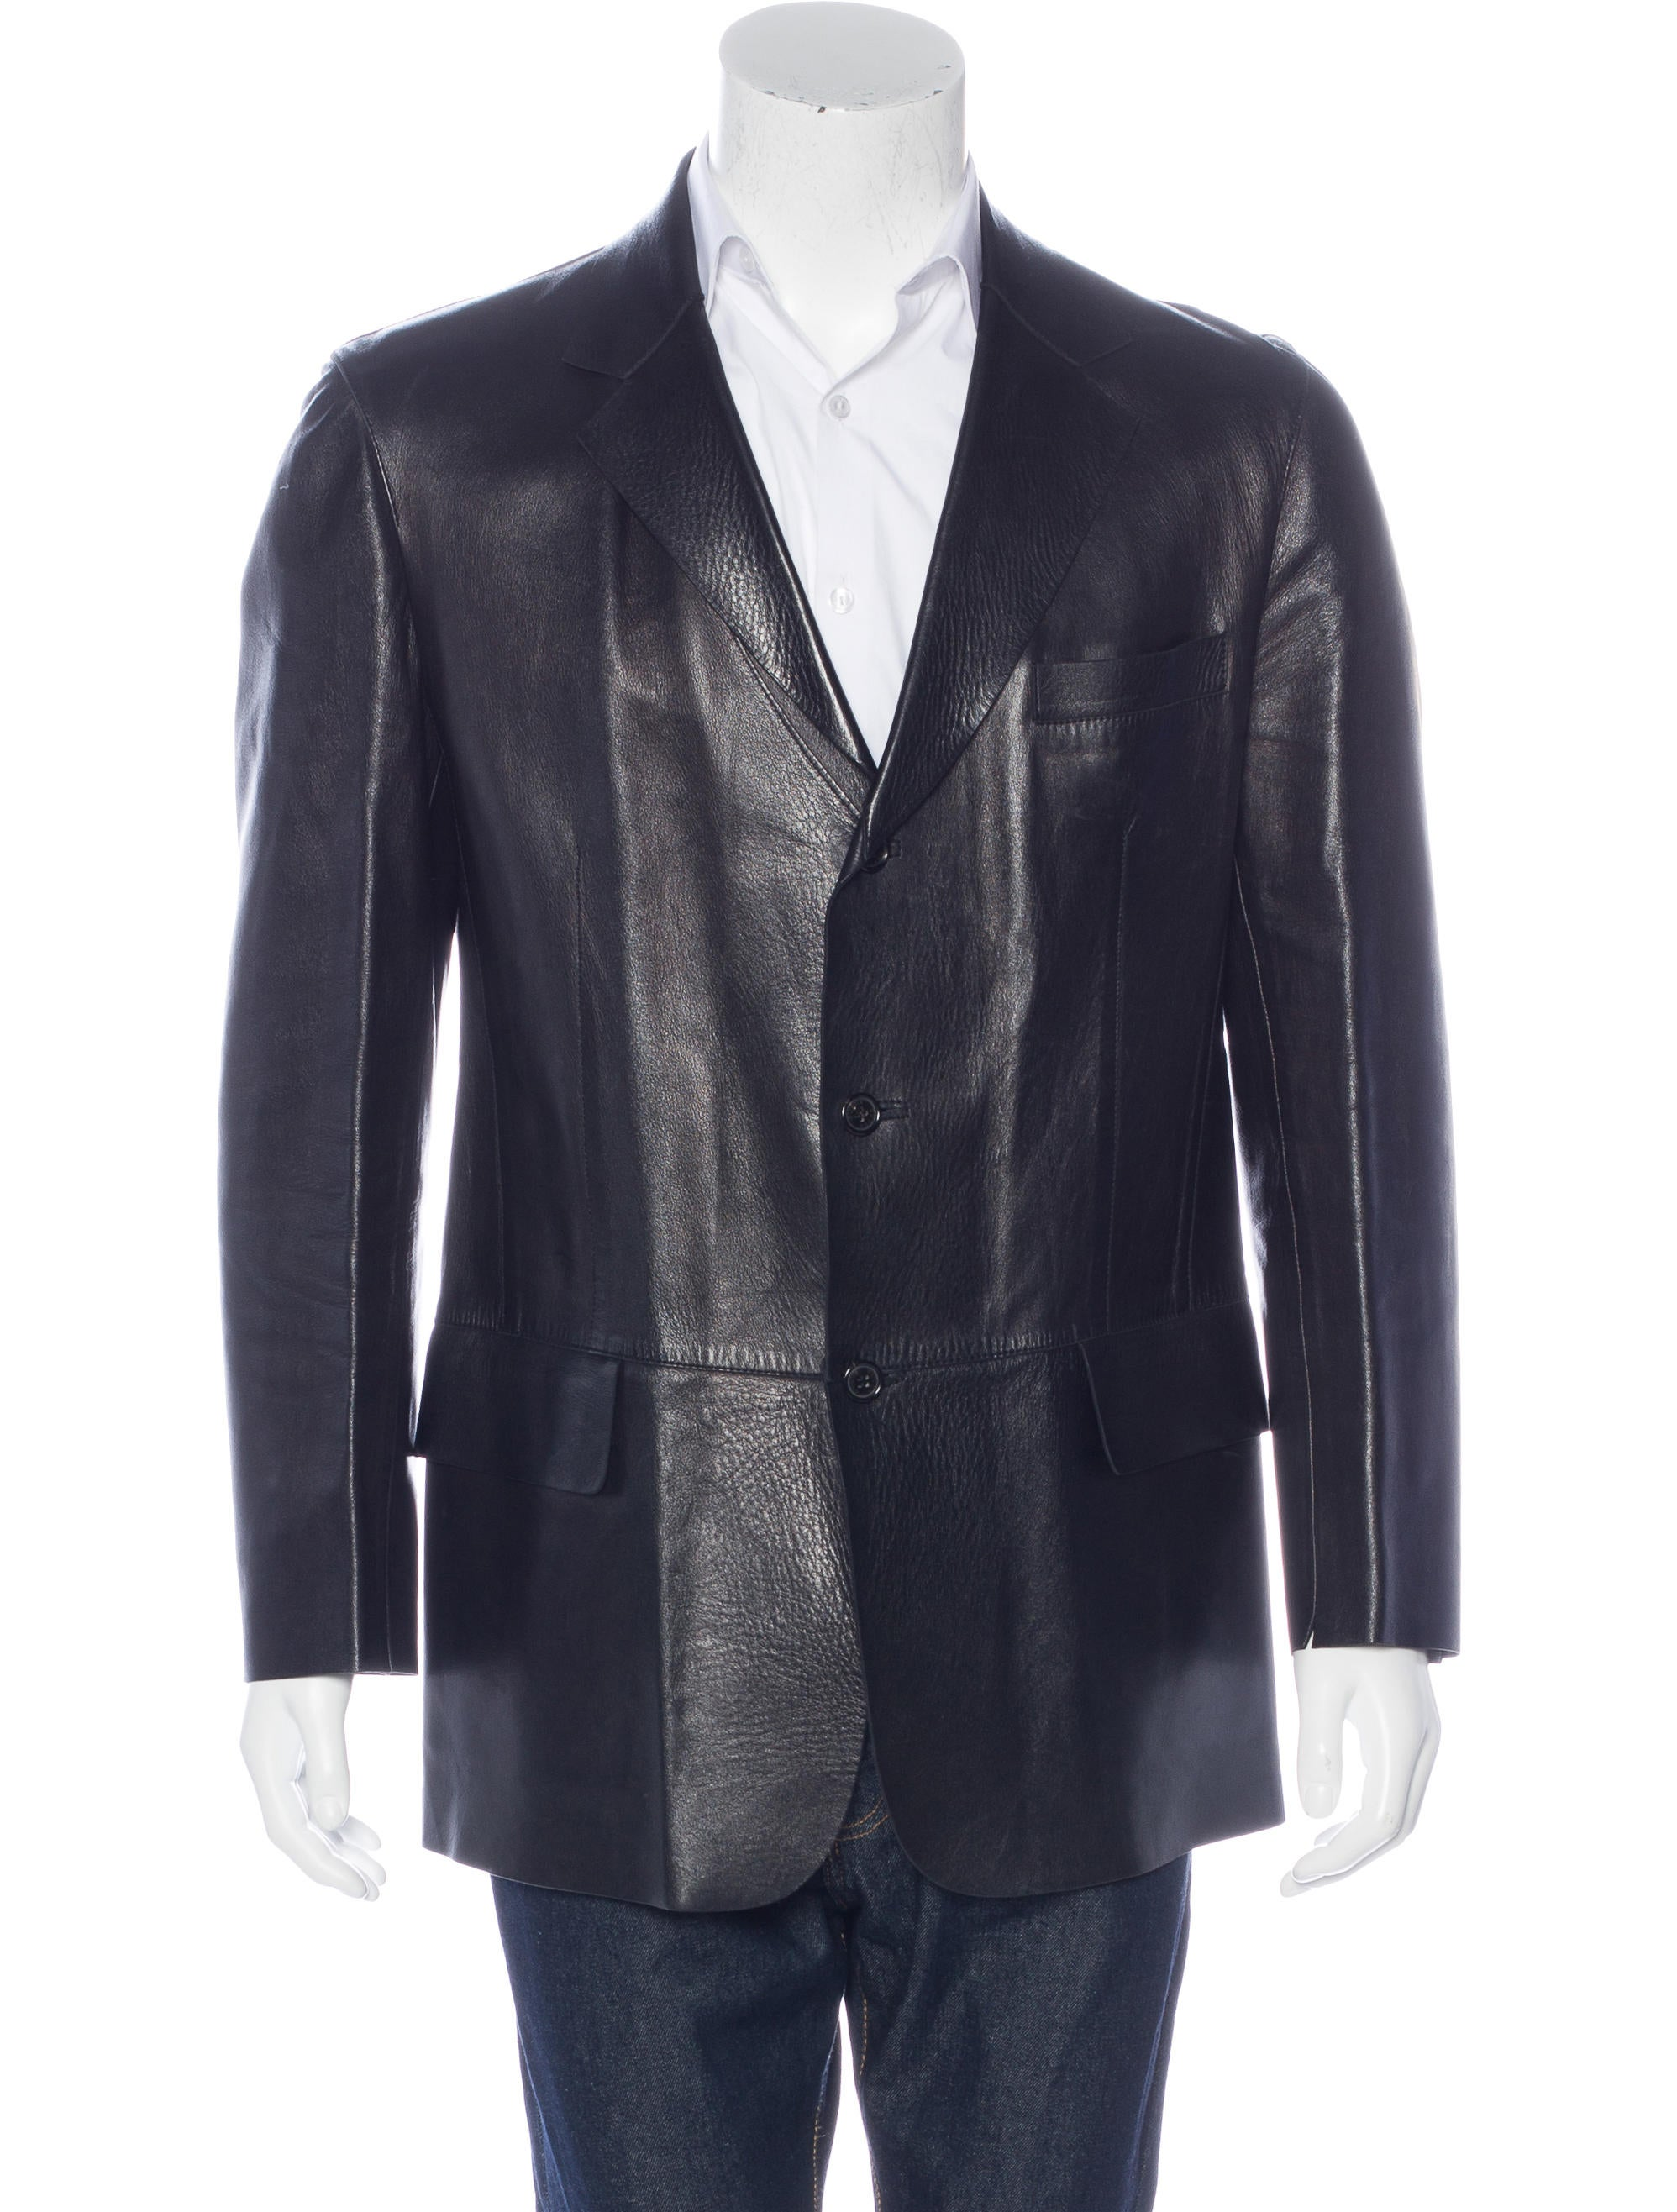 Gucci Leather Sport Coat - Clothing - GUC153676 | The RealReal